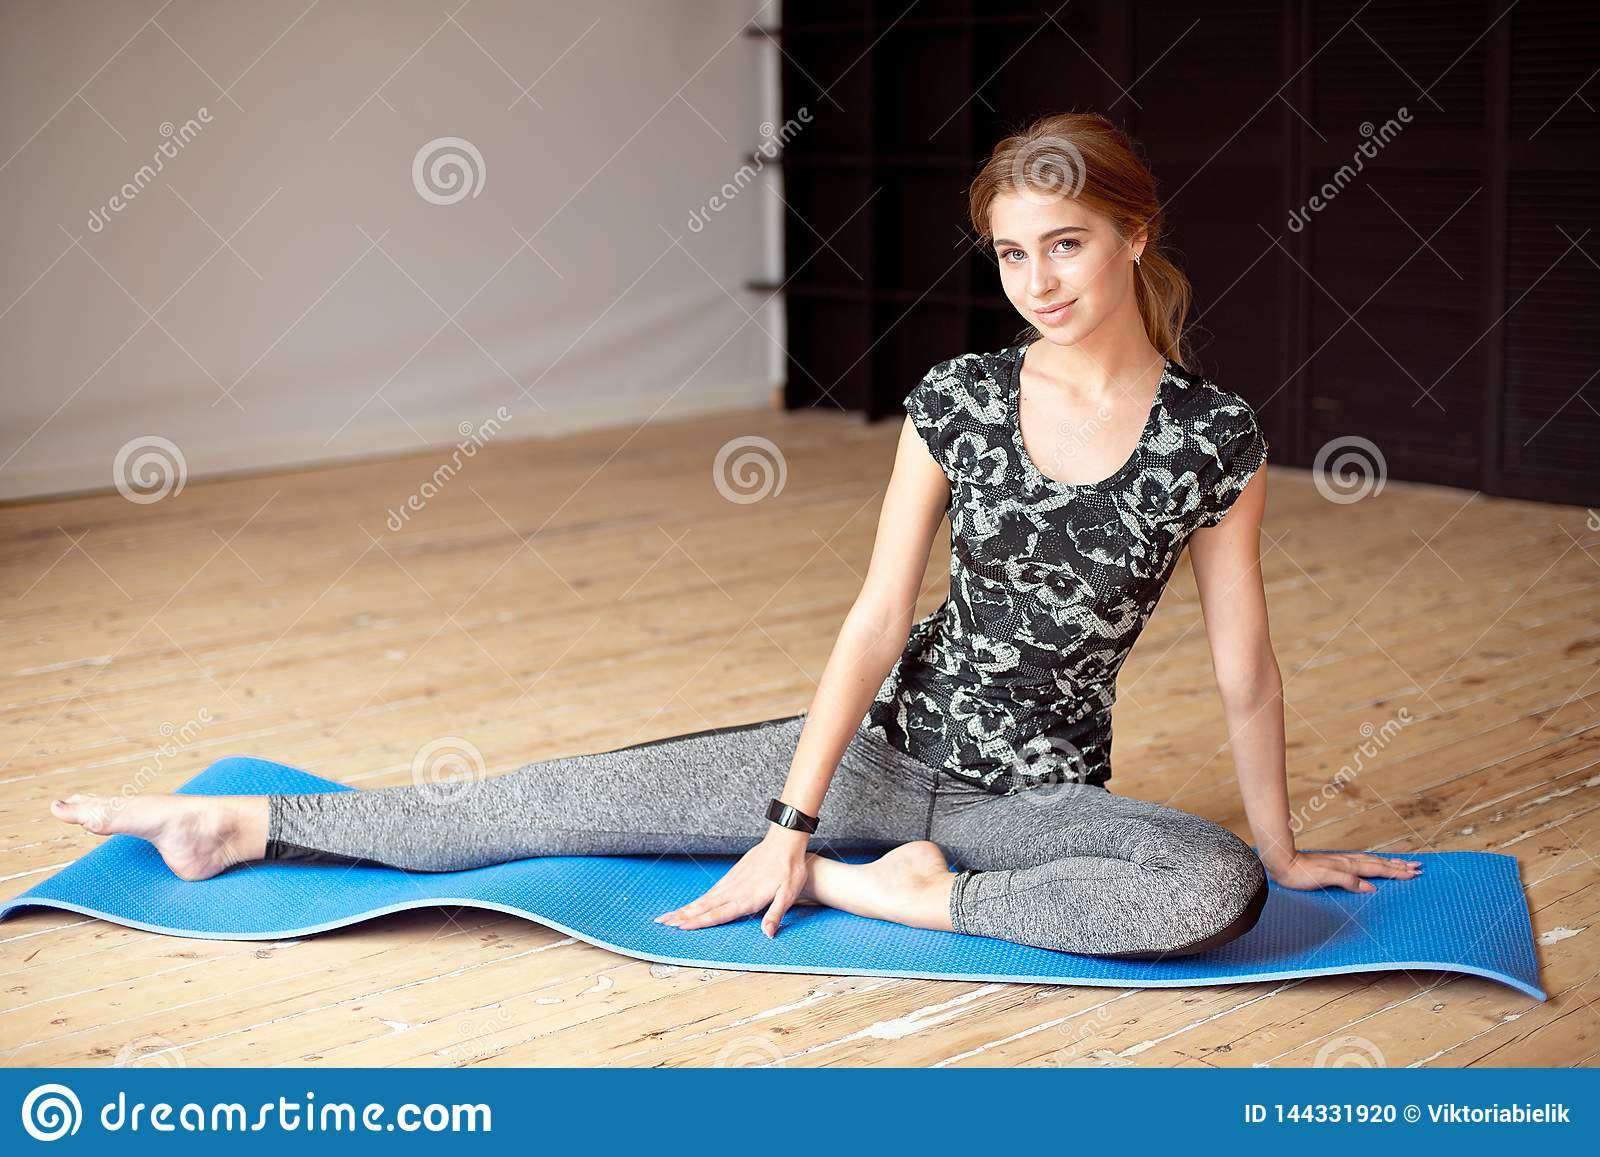 Portrait of a beautiful sports girl in sportswear resting after a fitness workout drinking water from a bottle sitting